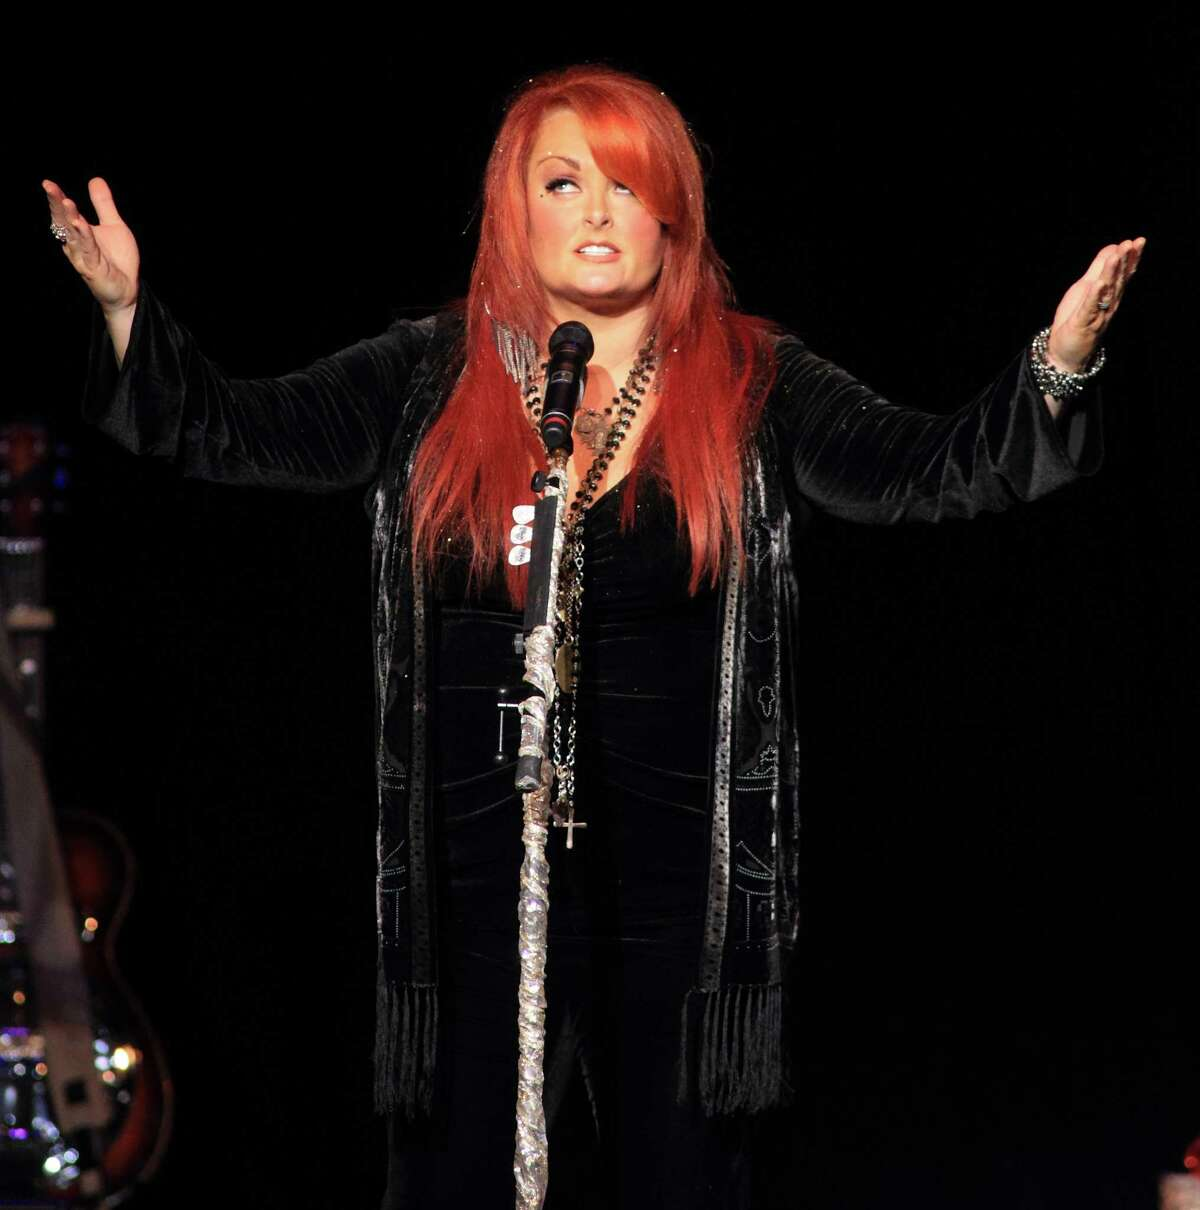 Country music artist Wynonna Judd performs in concert during her